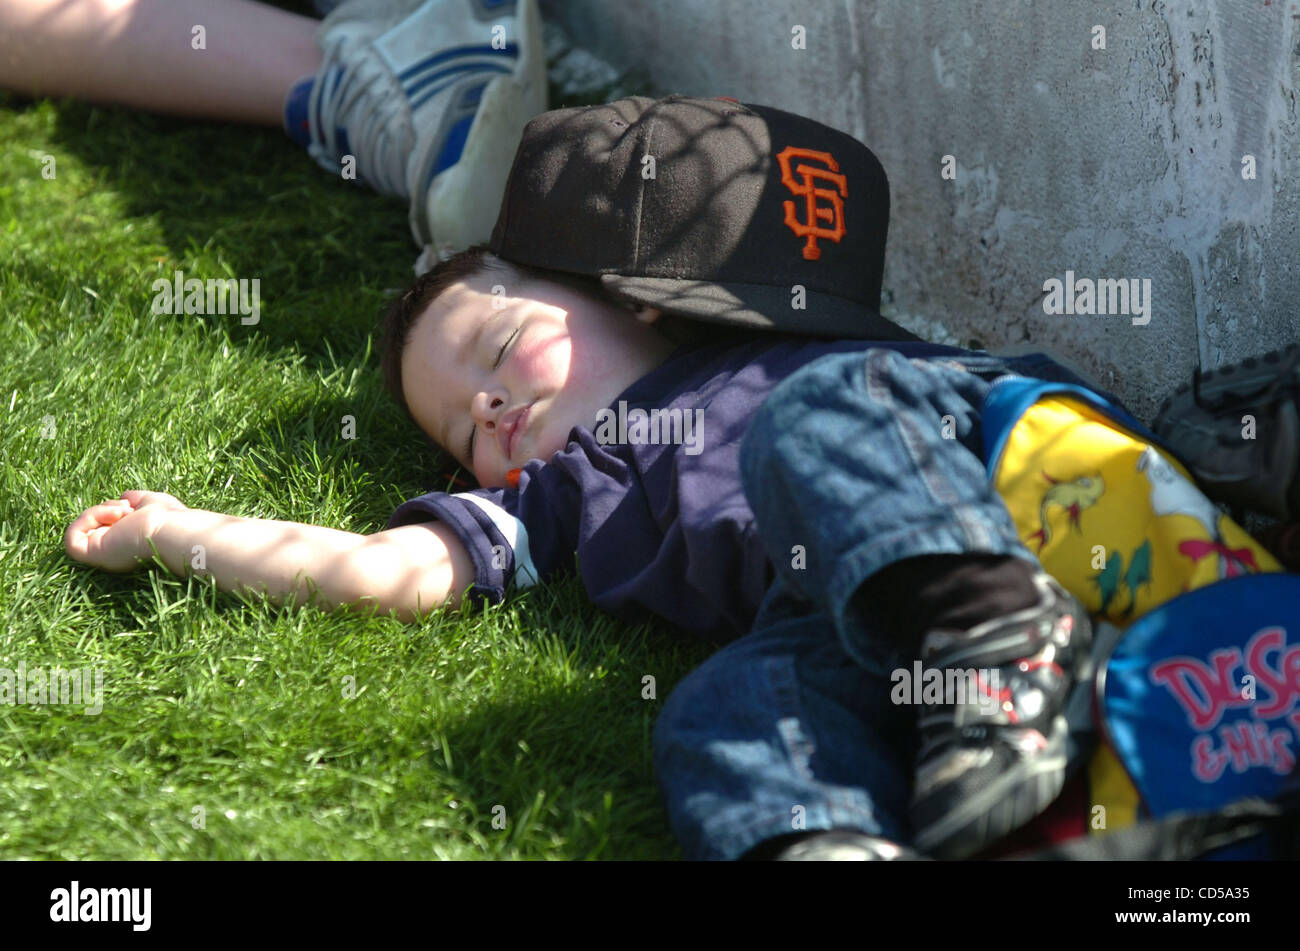 San Francisco Giants fan Rohan Rustvold of Albuquerque, New Mexico snoozes as his team loses badly to the Oakland - Stock Image